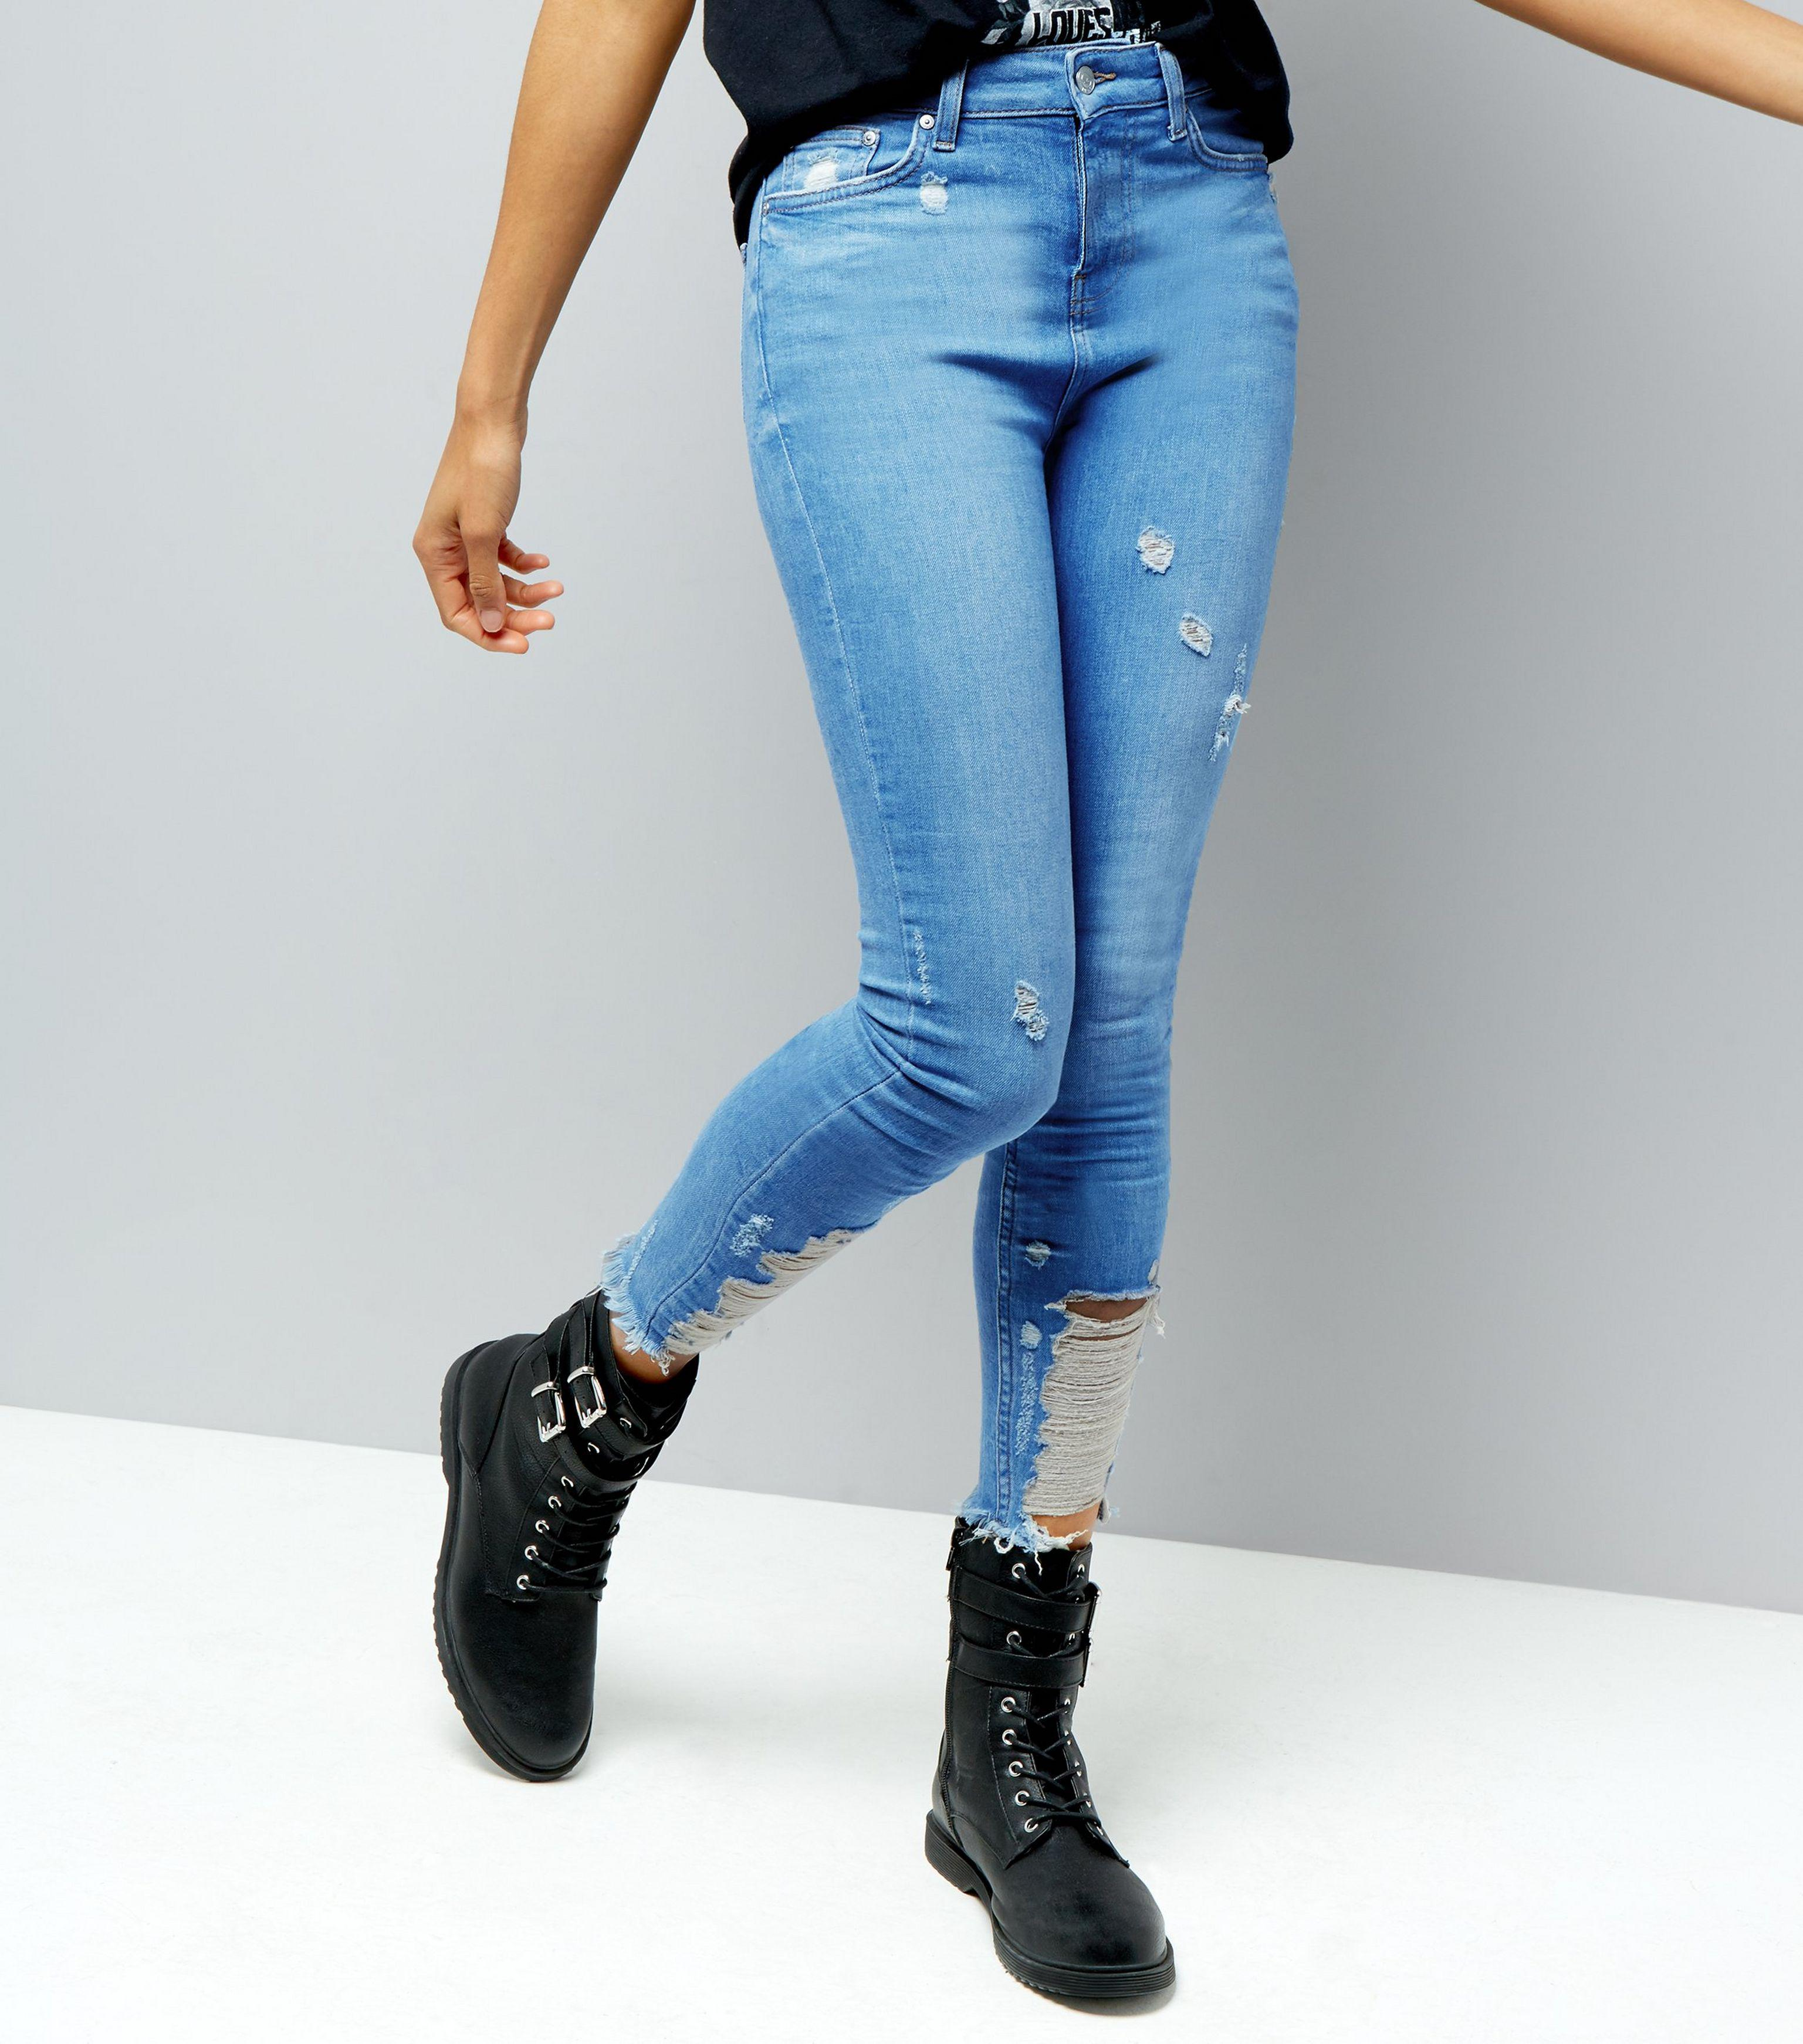 007ca802229 New Look Tall Blue Ripped Skinny Jeans in Blue - Lyst